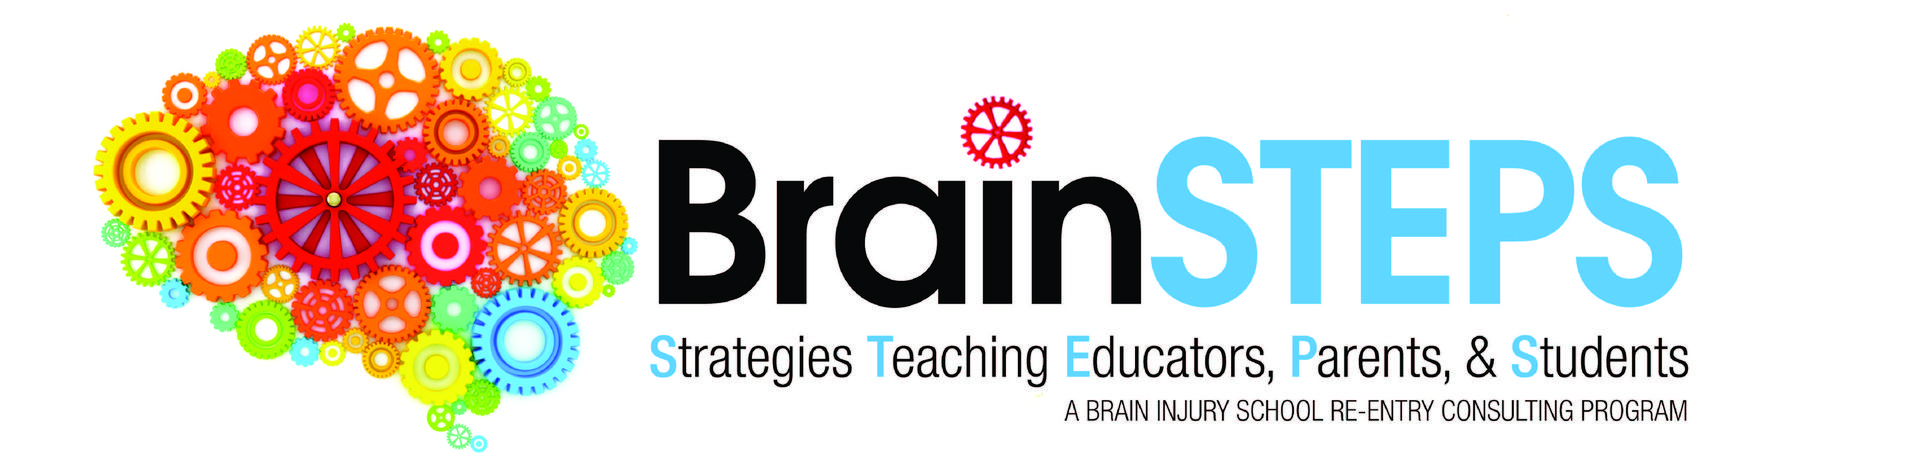 Brainsteps Team of Colorado Logo,  Illustration of Brain with gears on the inside